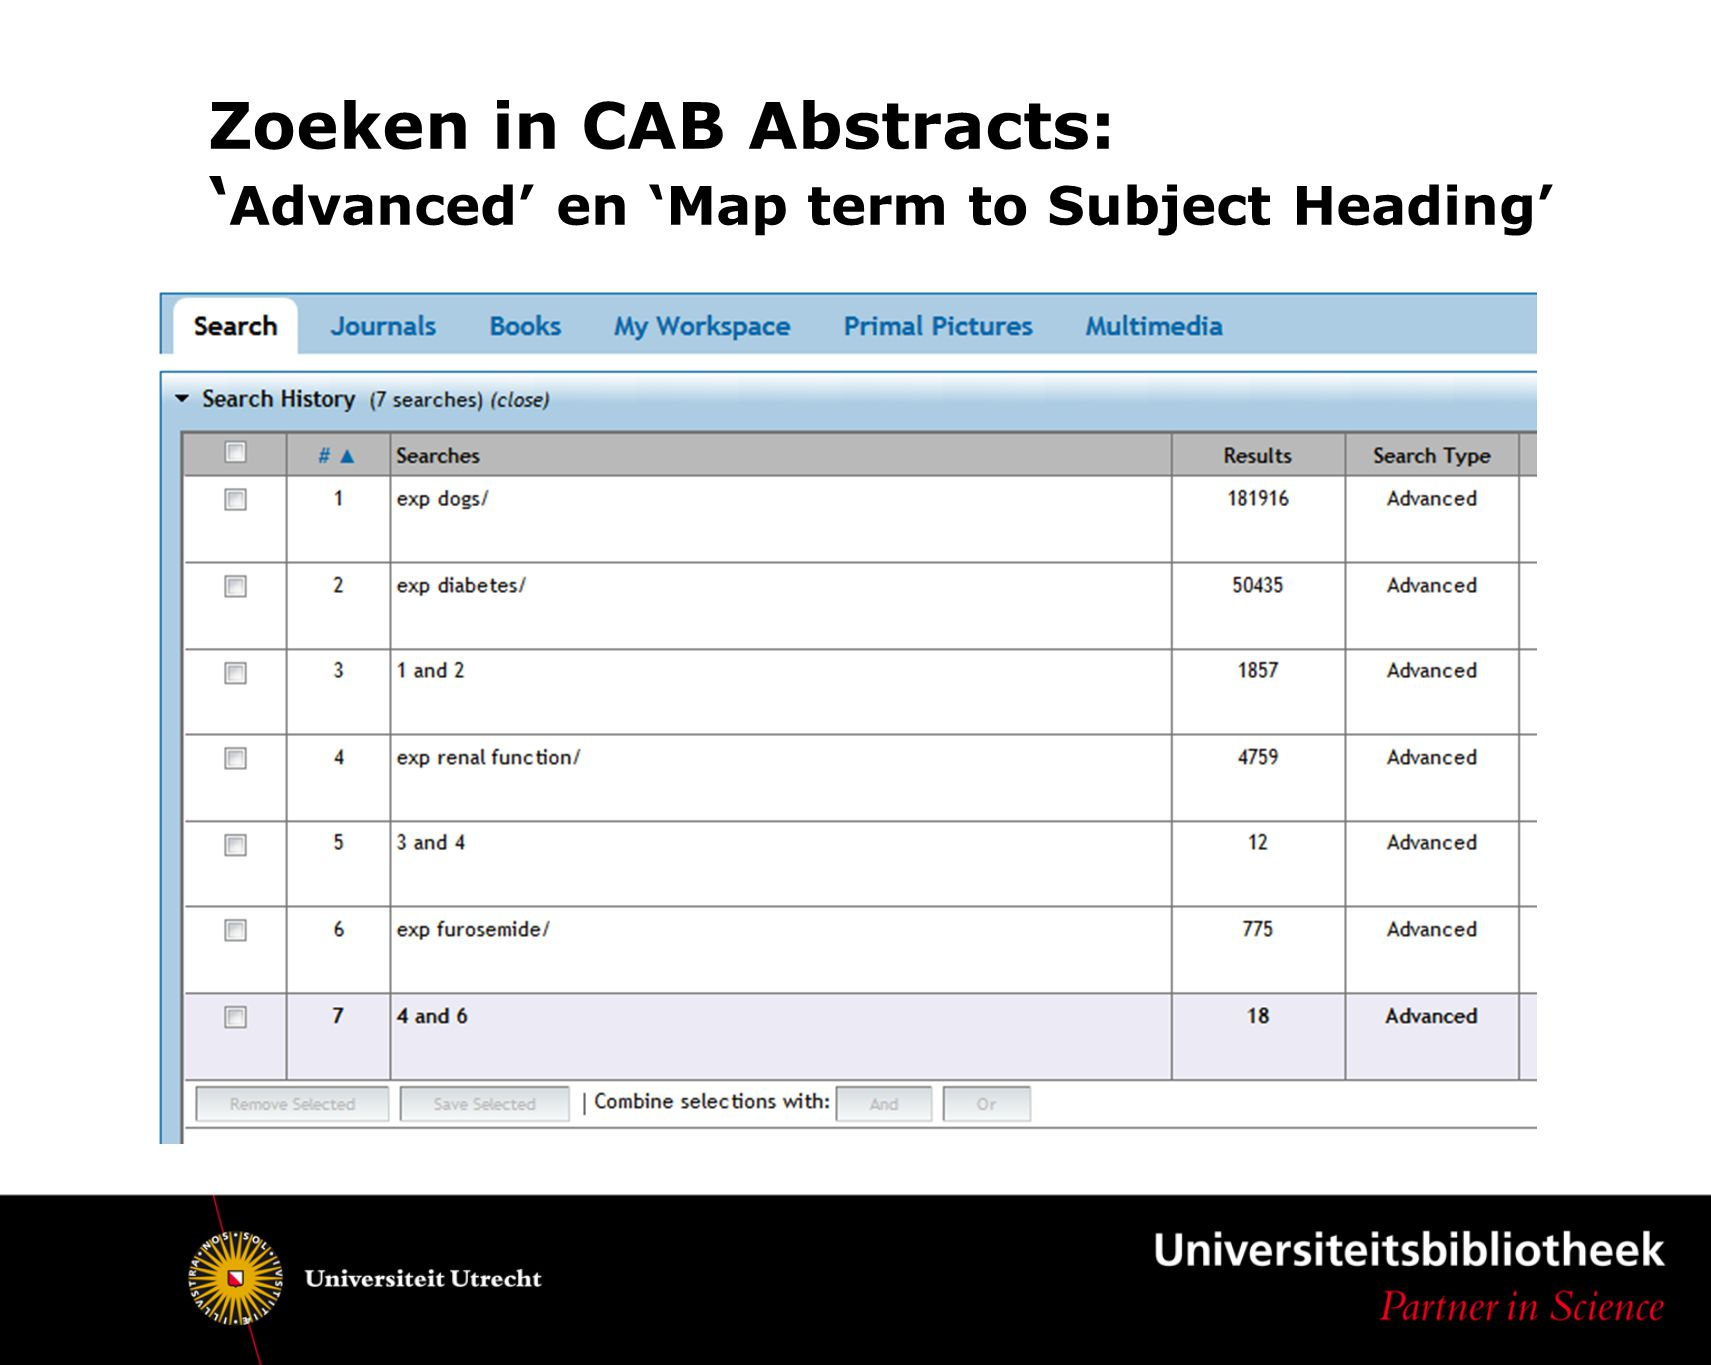 Zoeken in CAB Abstracts: 'Advanced' en 'Map term to Subject Heading'